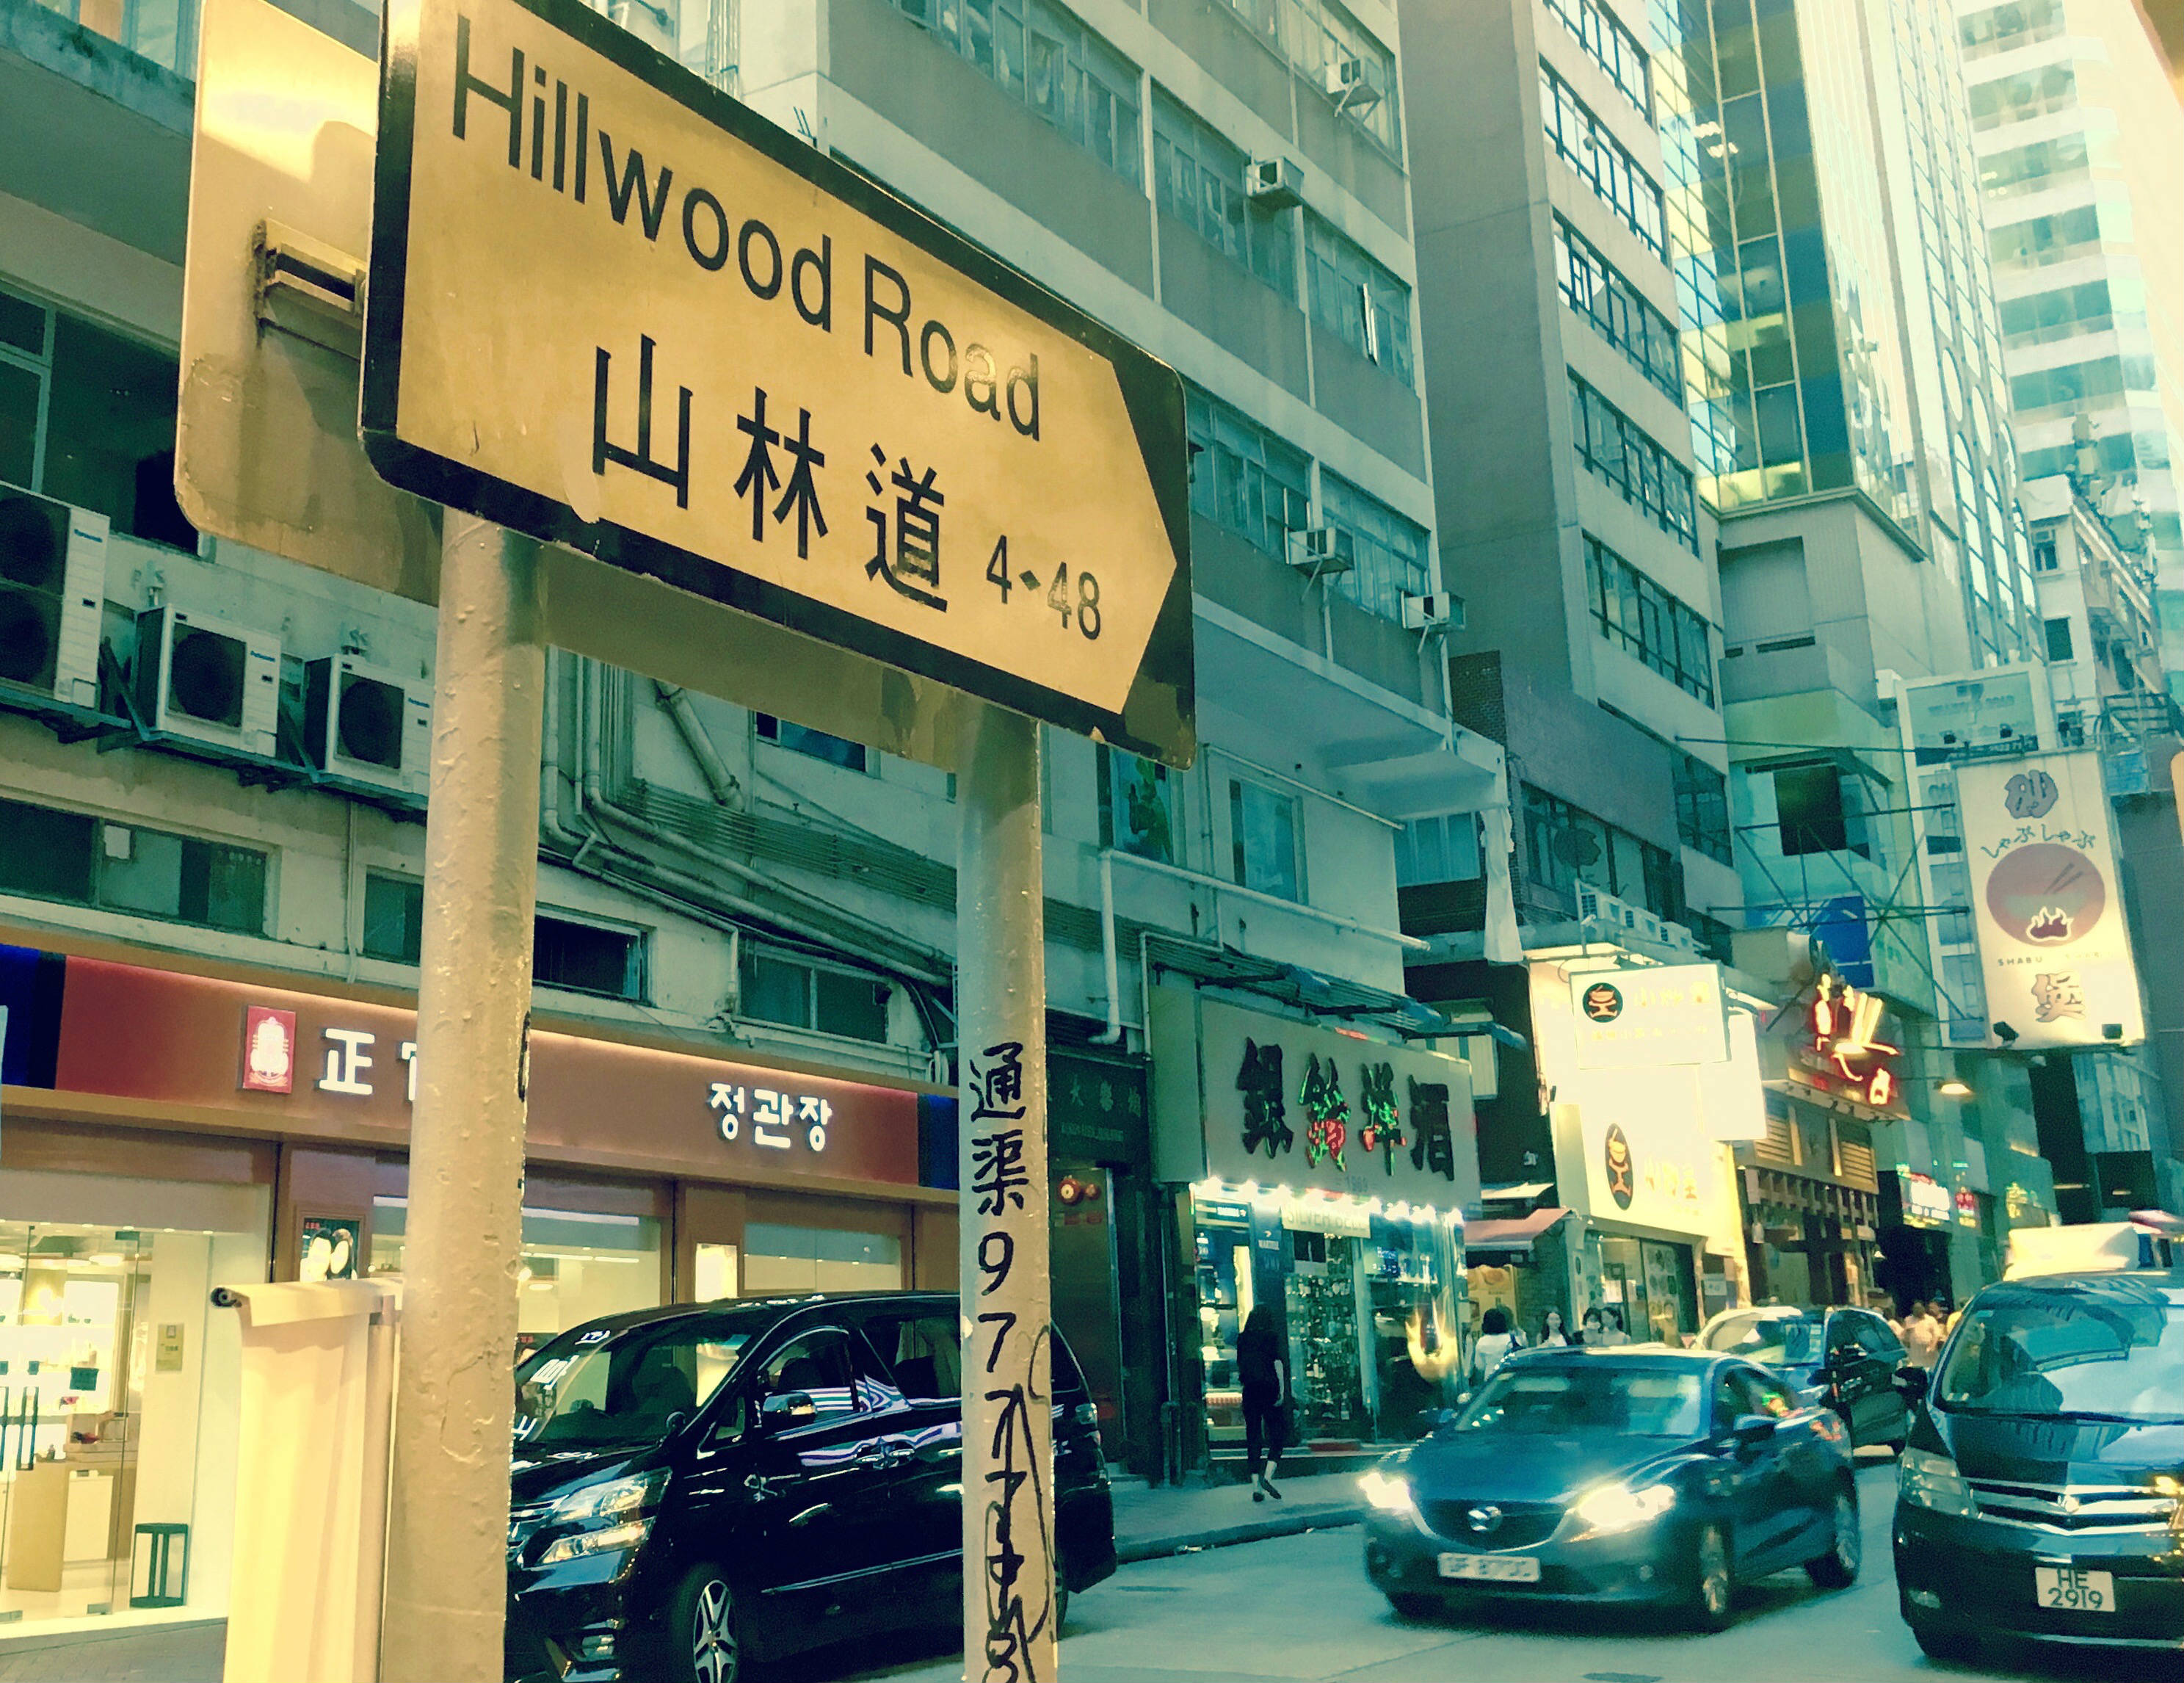 FB shop to let close to MTR statiion on Hillwood Road, Tsim Sha Tsui, Hong Kong